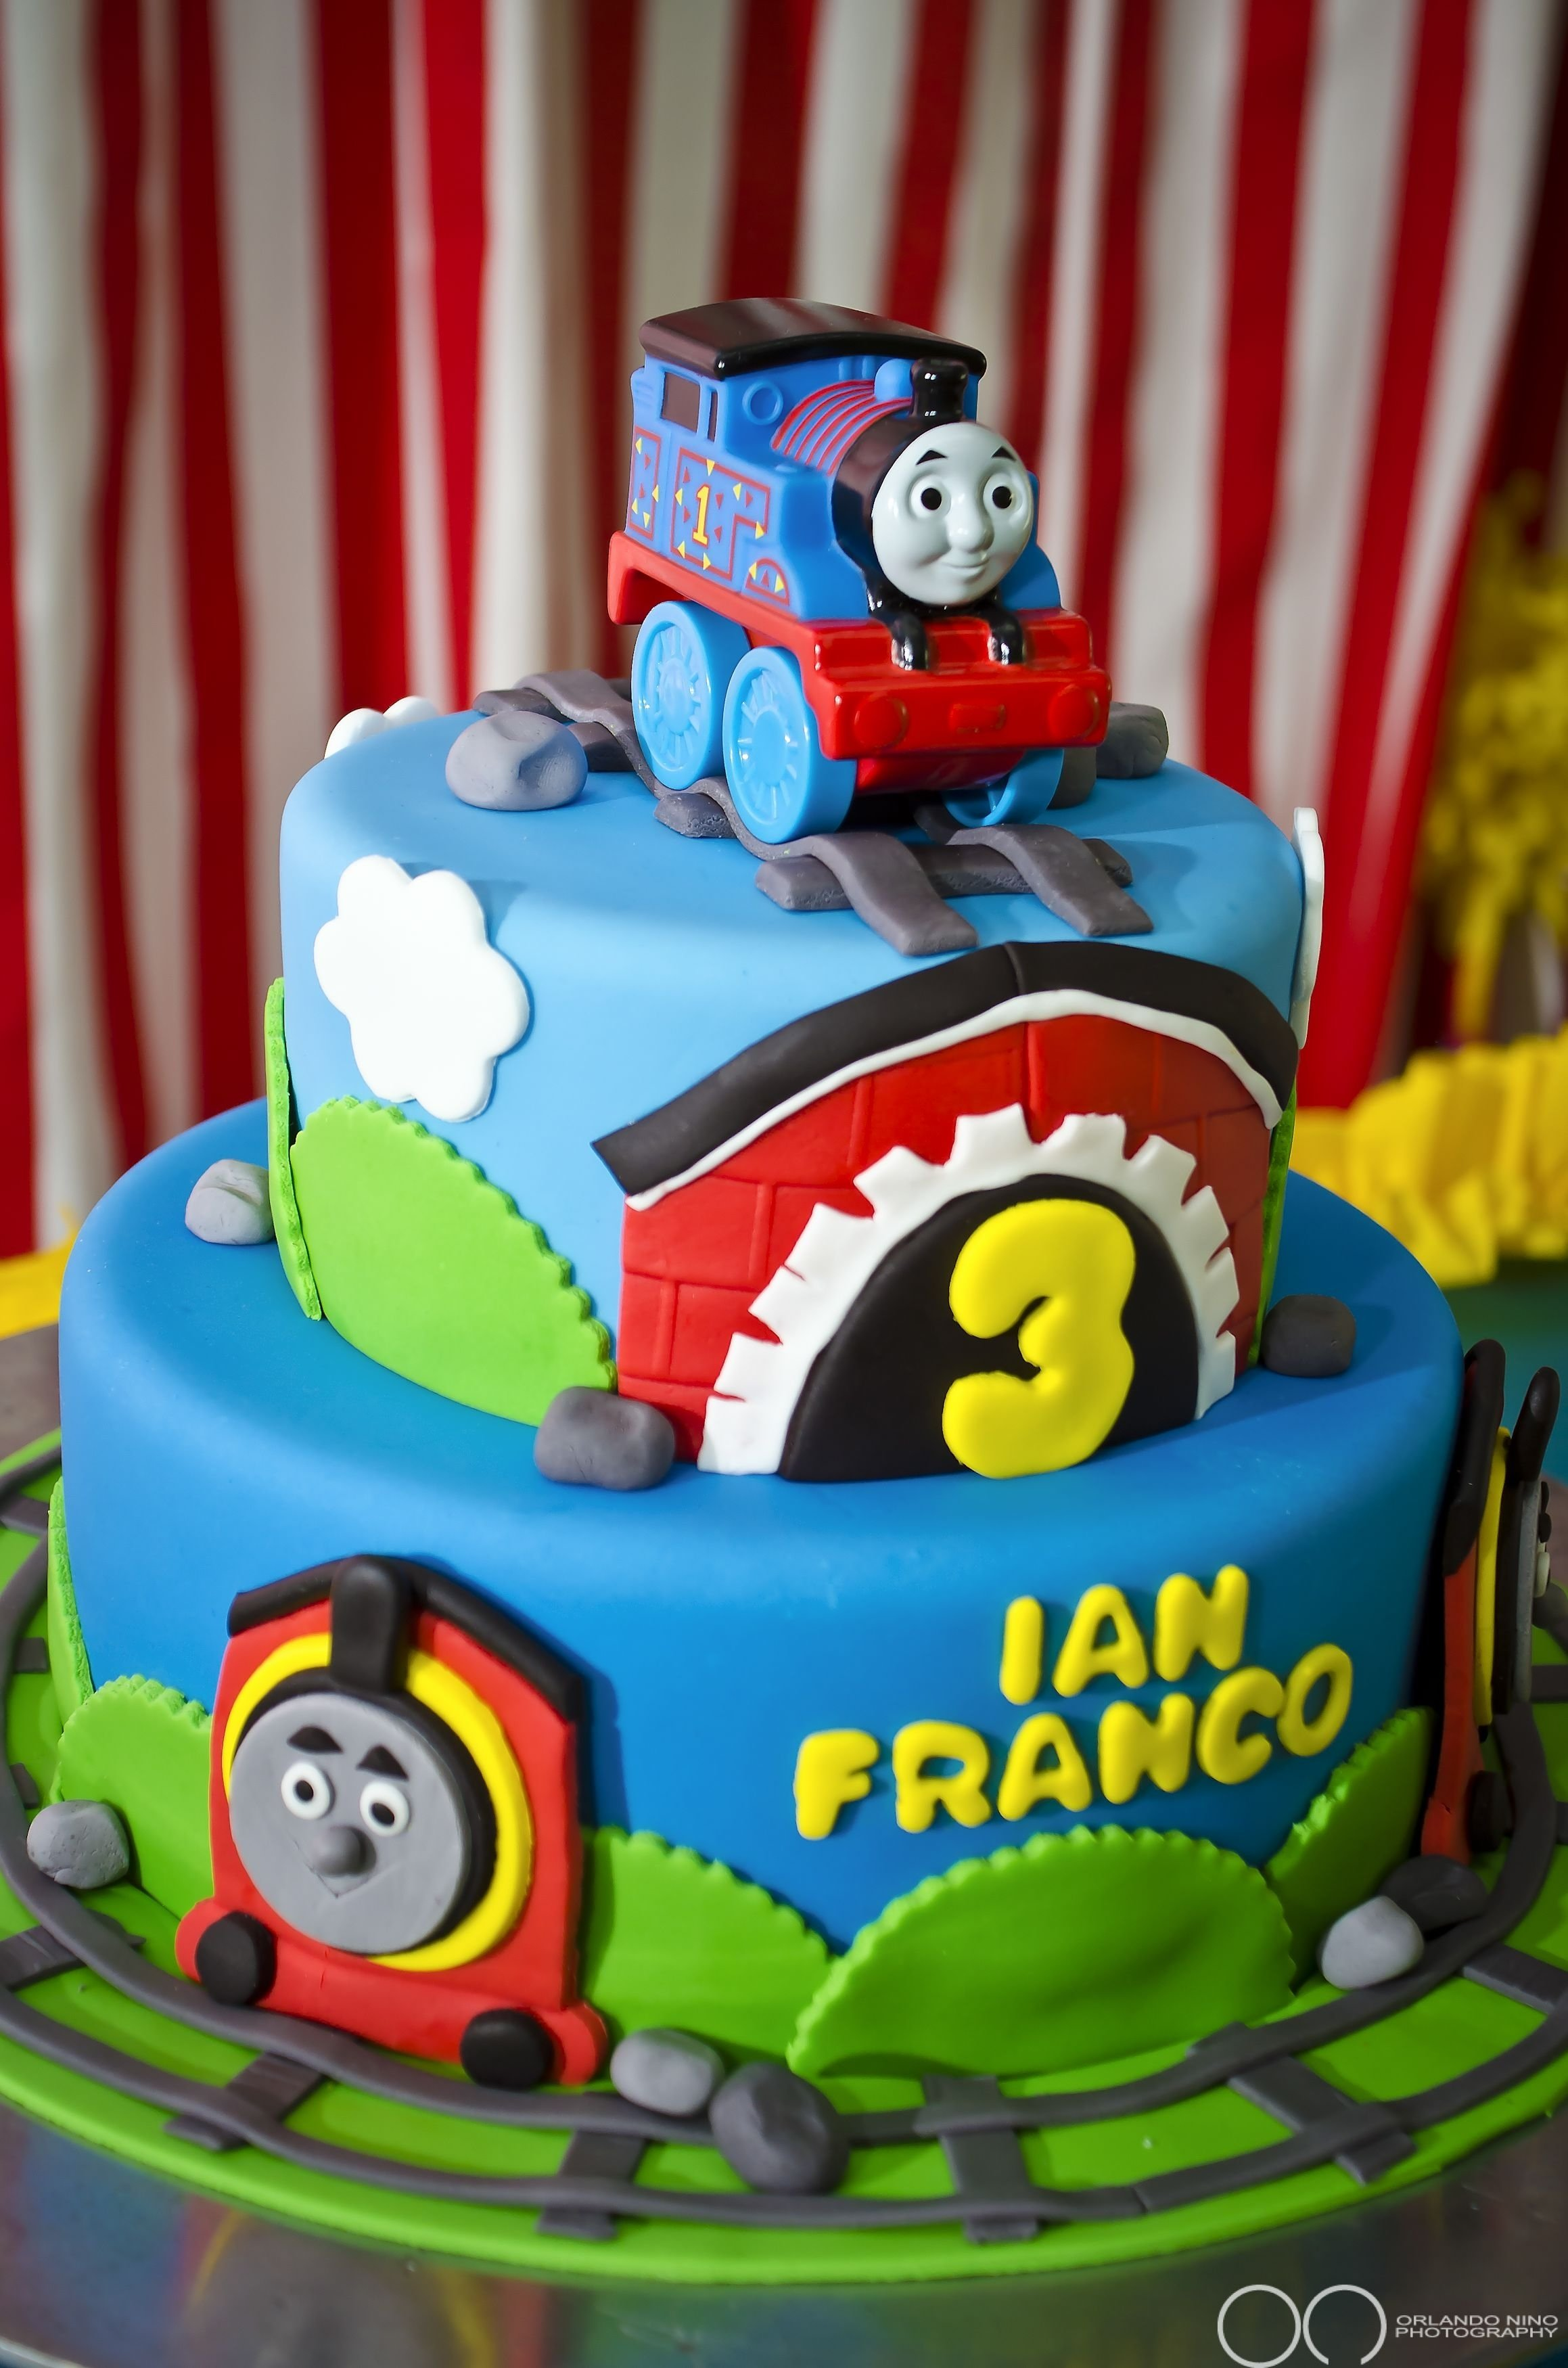 10 Lovely Thomas And Friends Birthday Ideas thomas and friends birthday cake bday ideas pinterest friends 1 2021